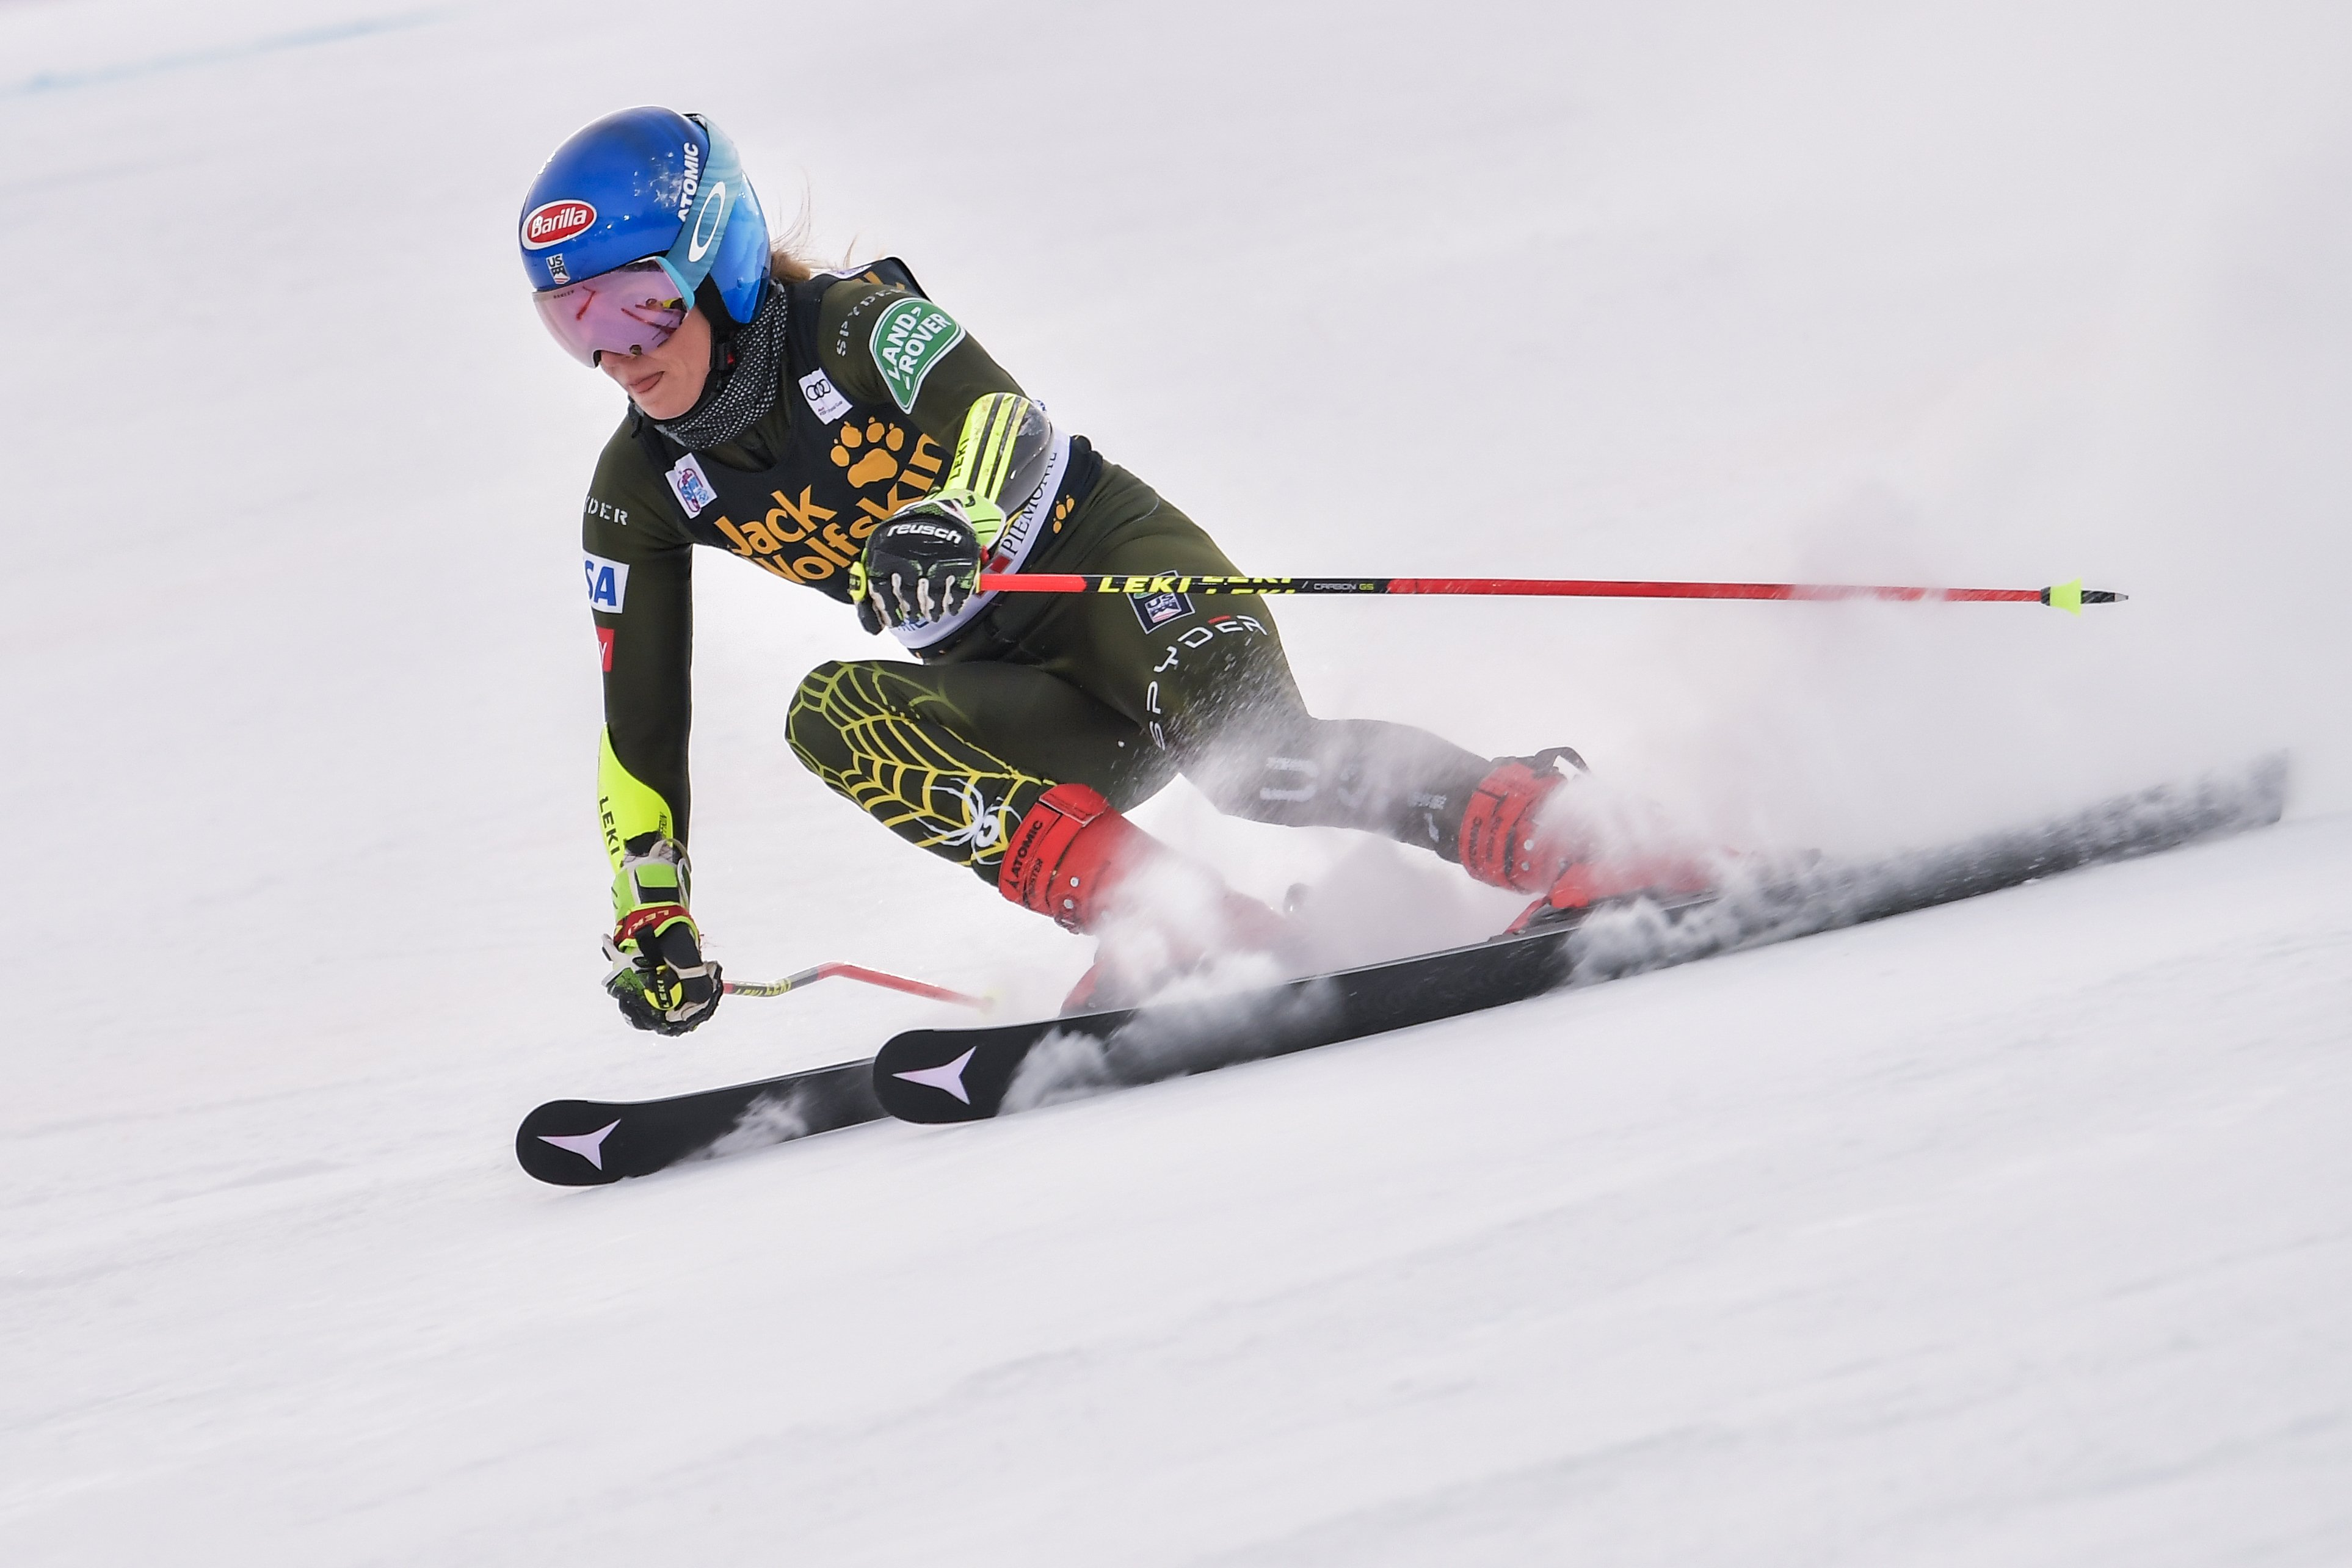 Three-time World Champion skier Mikaela Shiffrin breaks drought and claims first 2020 win taking victory in the World Cup downhill in Bulgaria